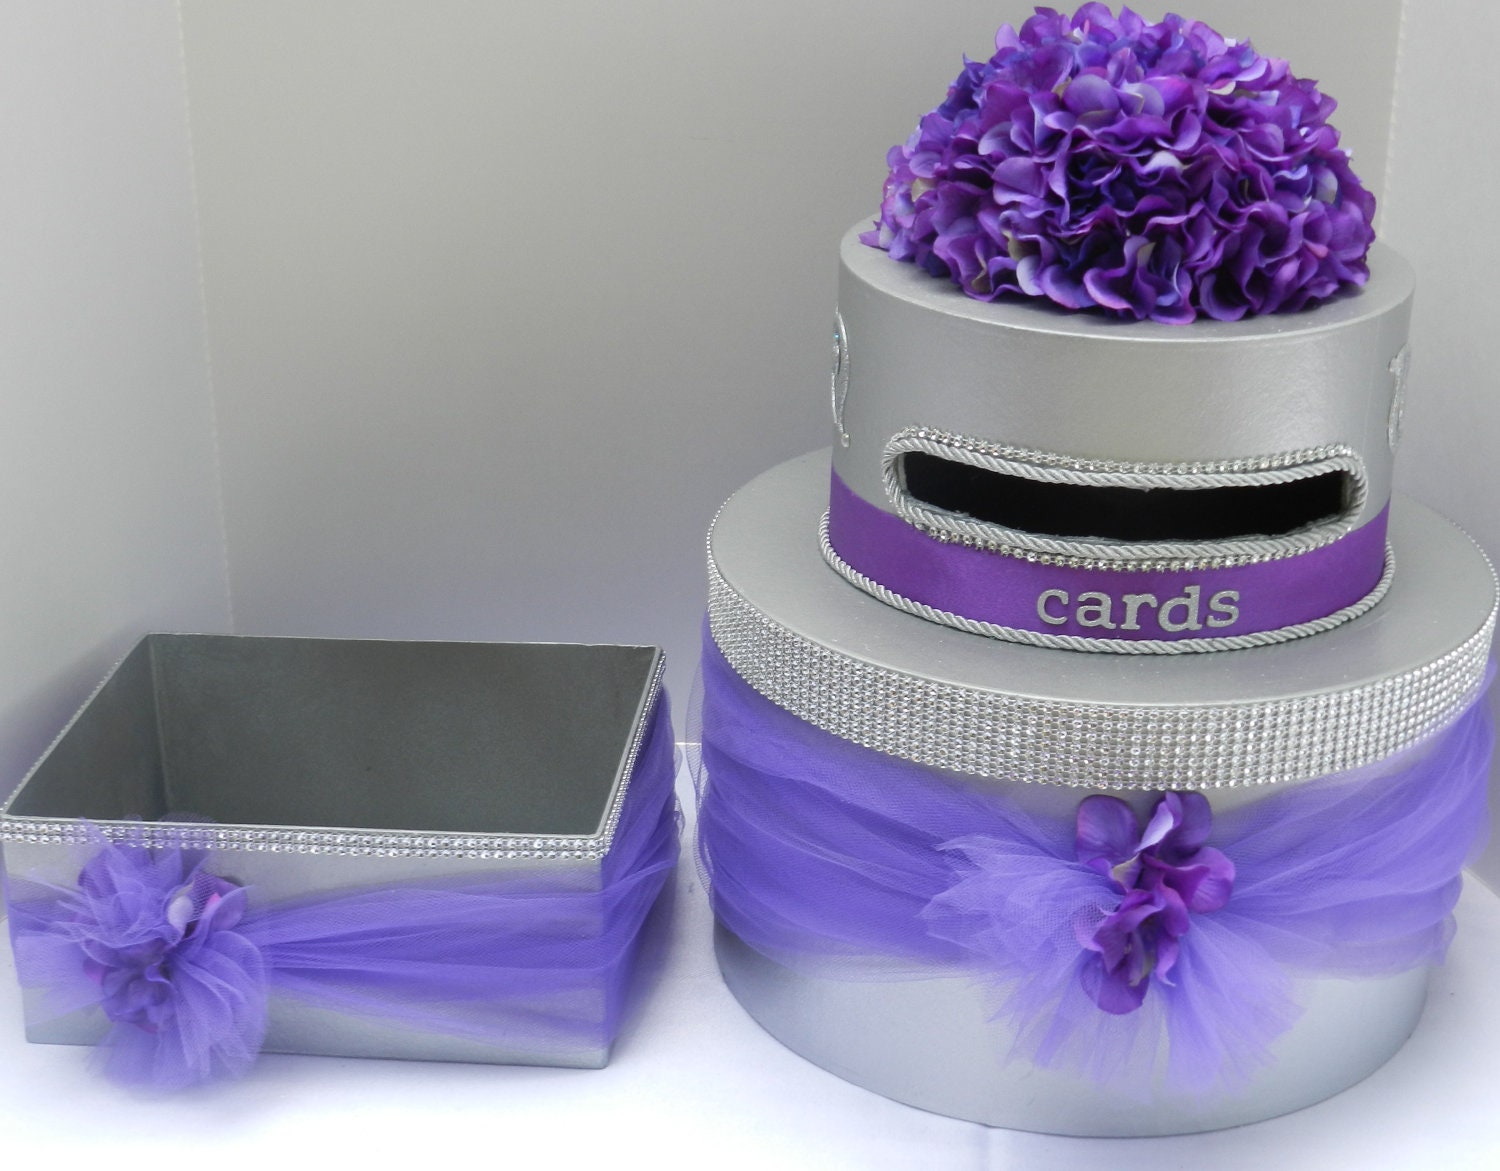 Purple Bling Wedding Cake Card Box & Program Box